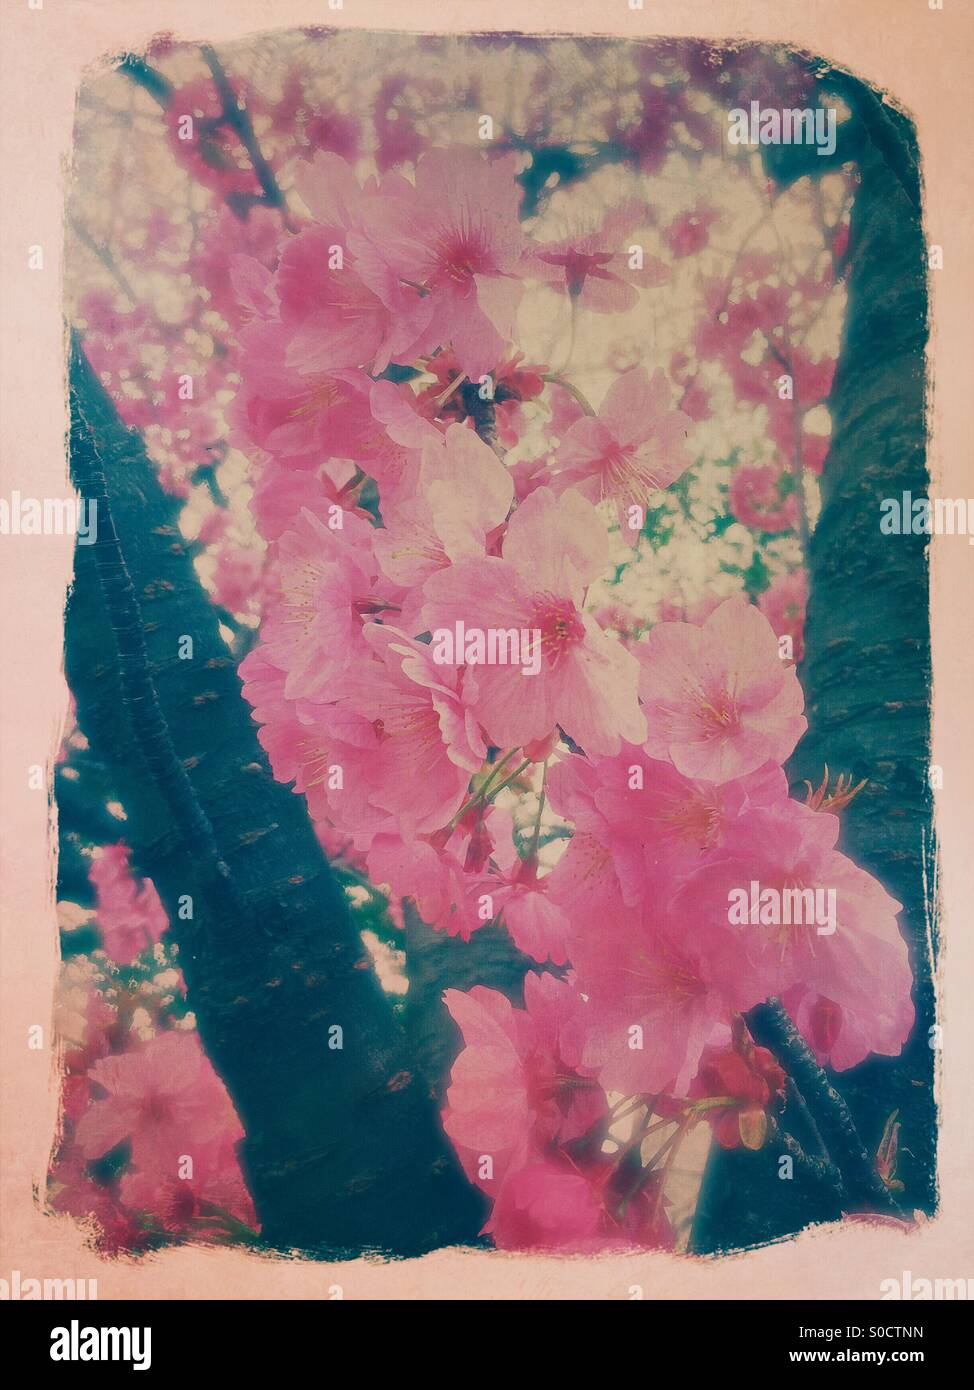 Pretty, pink sakura or cherry blossoms. Painterly  frame with rough edges and vintage texture overlay. - Stock Image